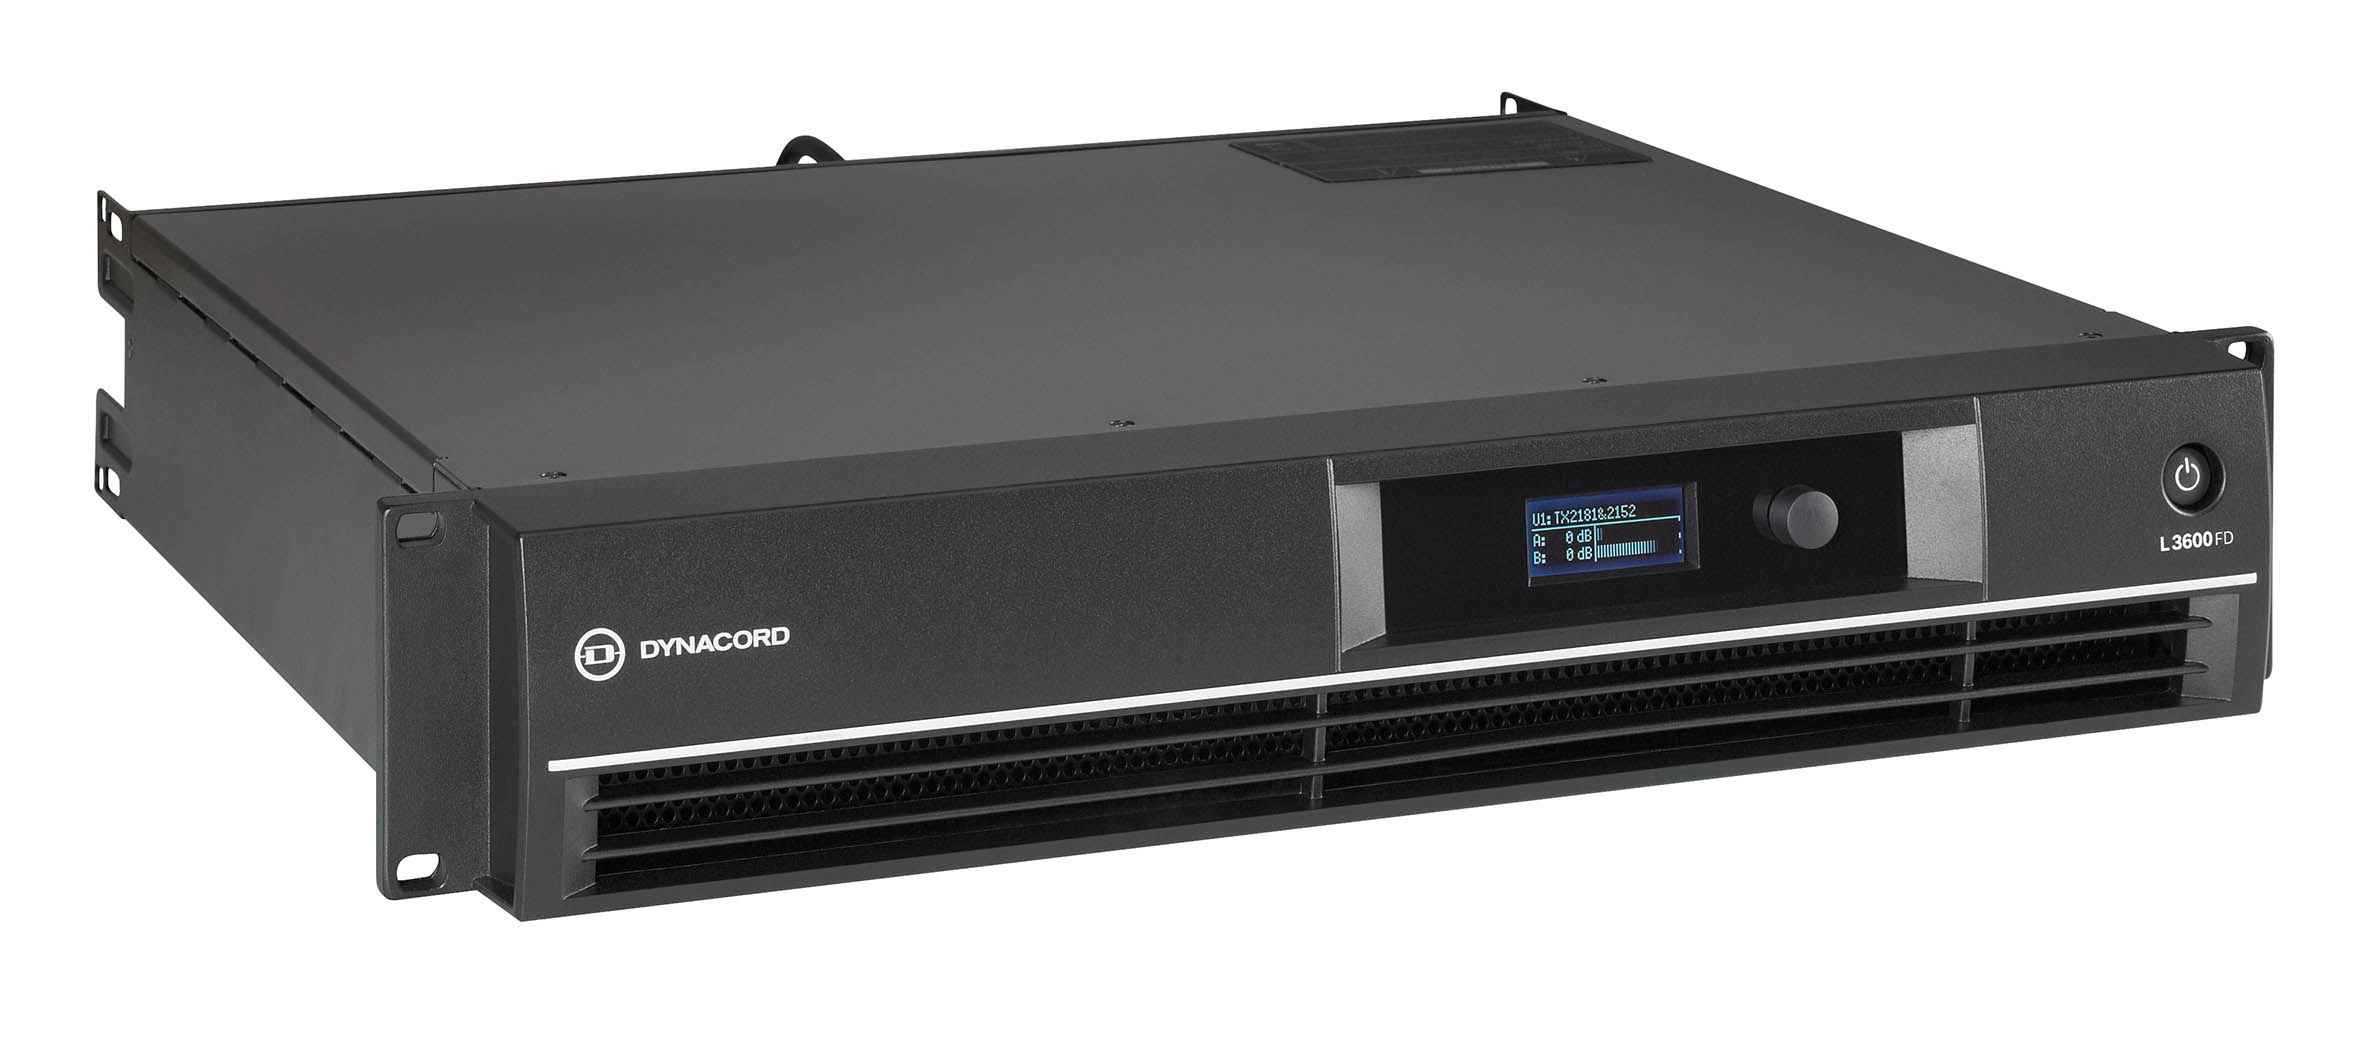 Dynacord launches new power amplifiers globally